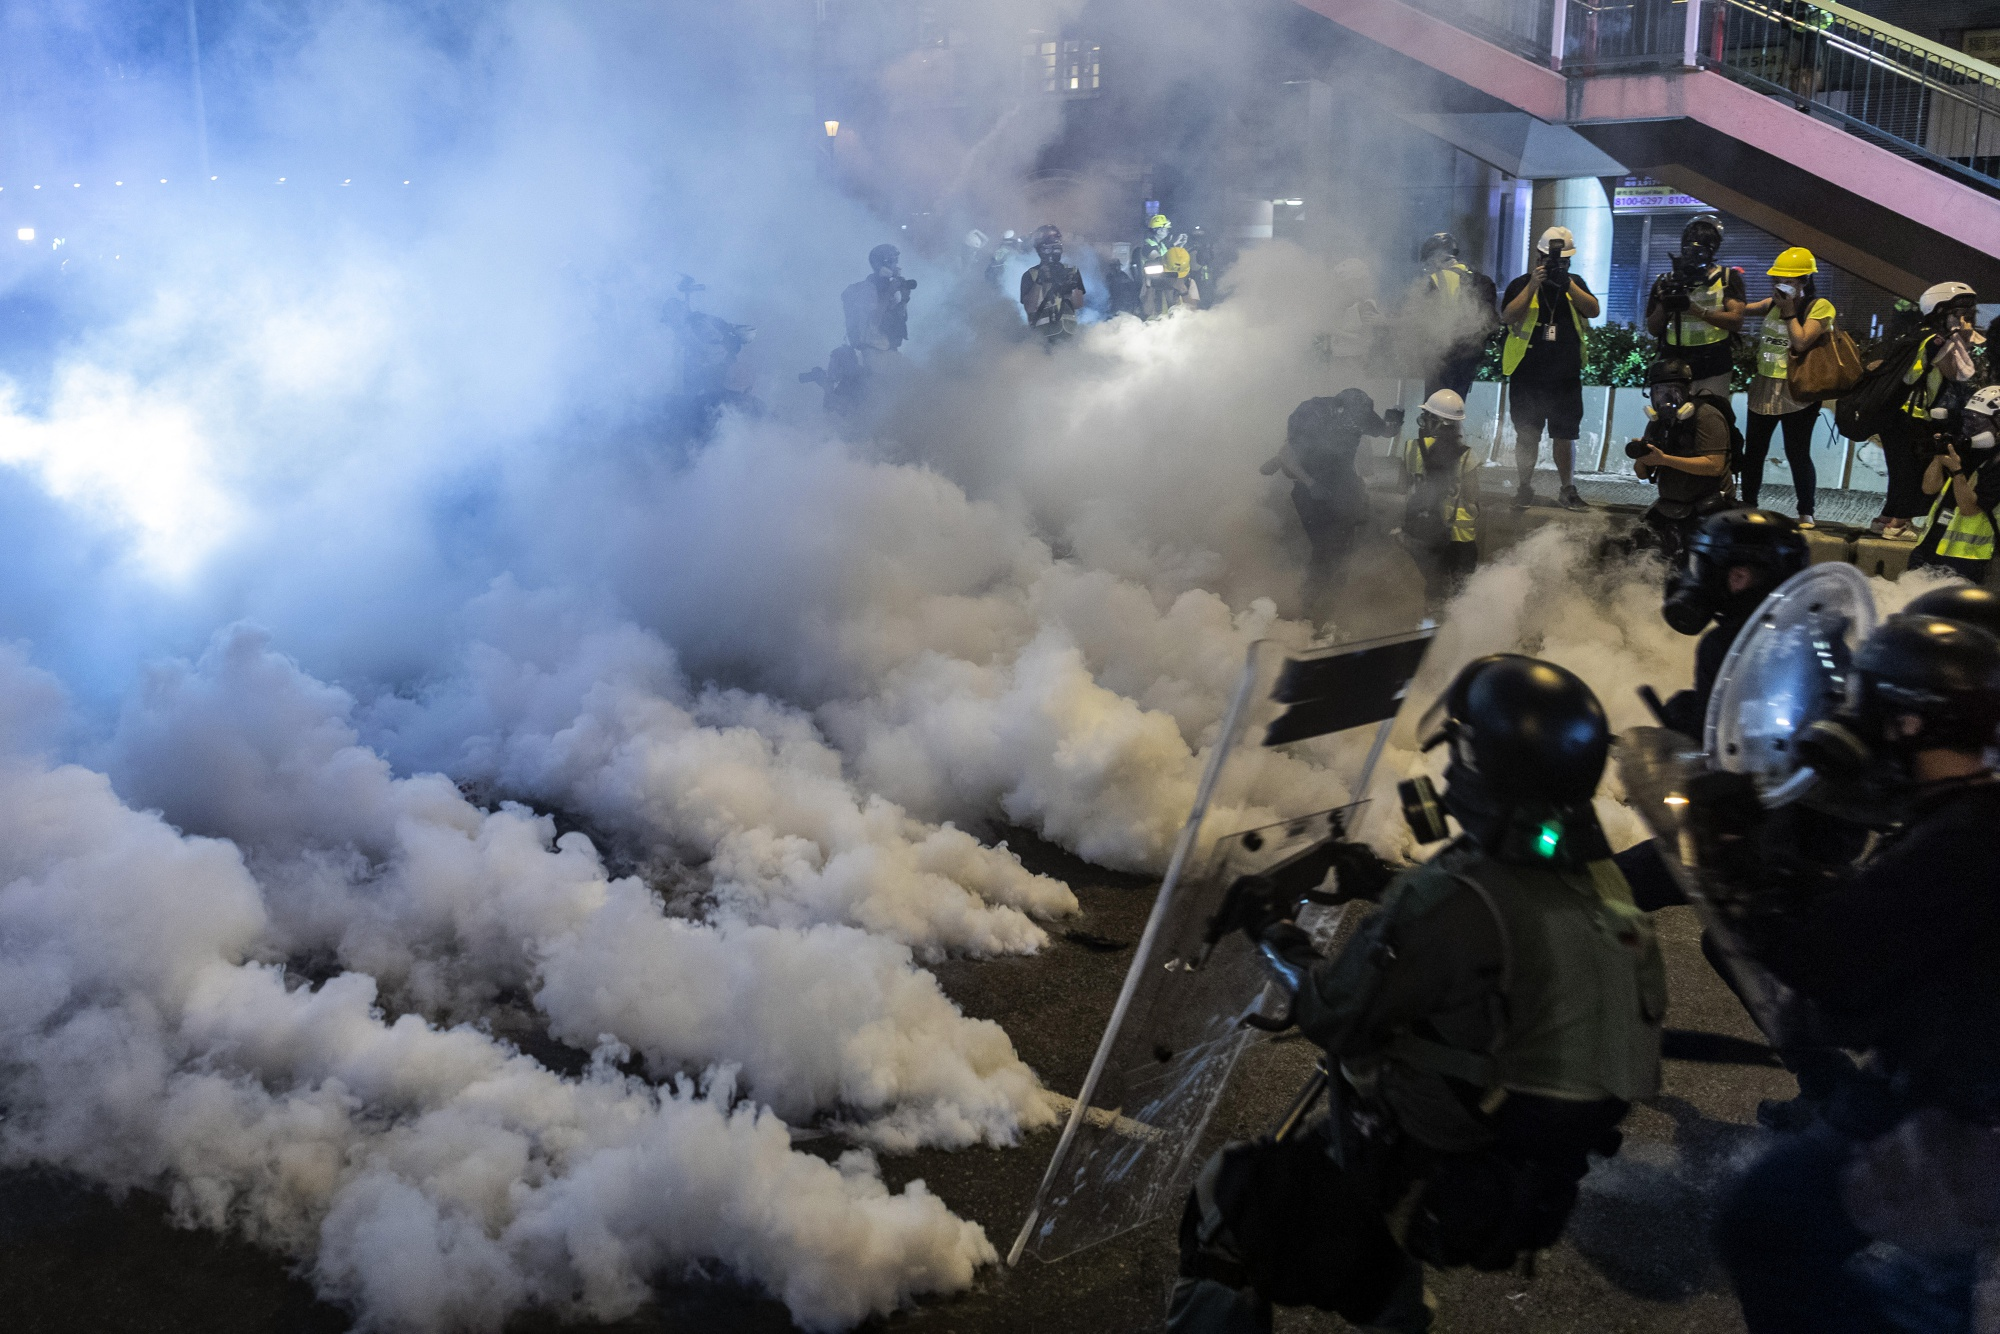 Tear Gas, Attacks and Beijings Warnings Fuel Hong Kong Anxiety